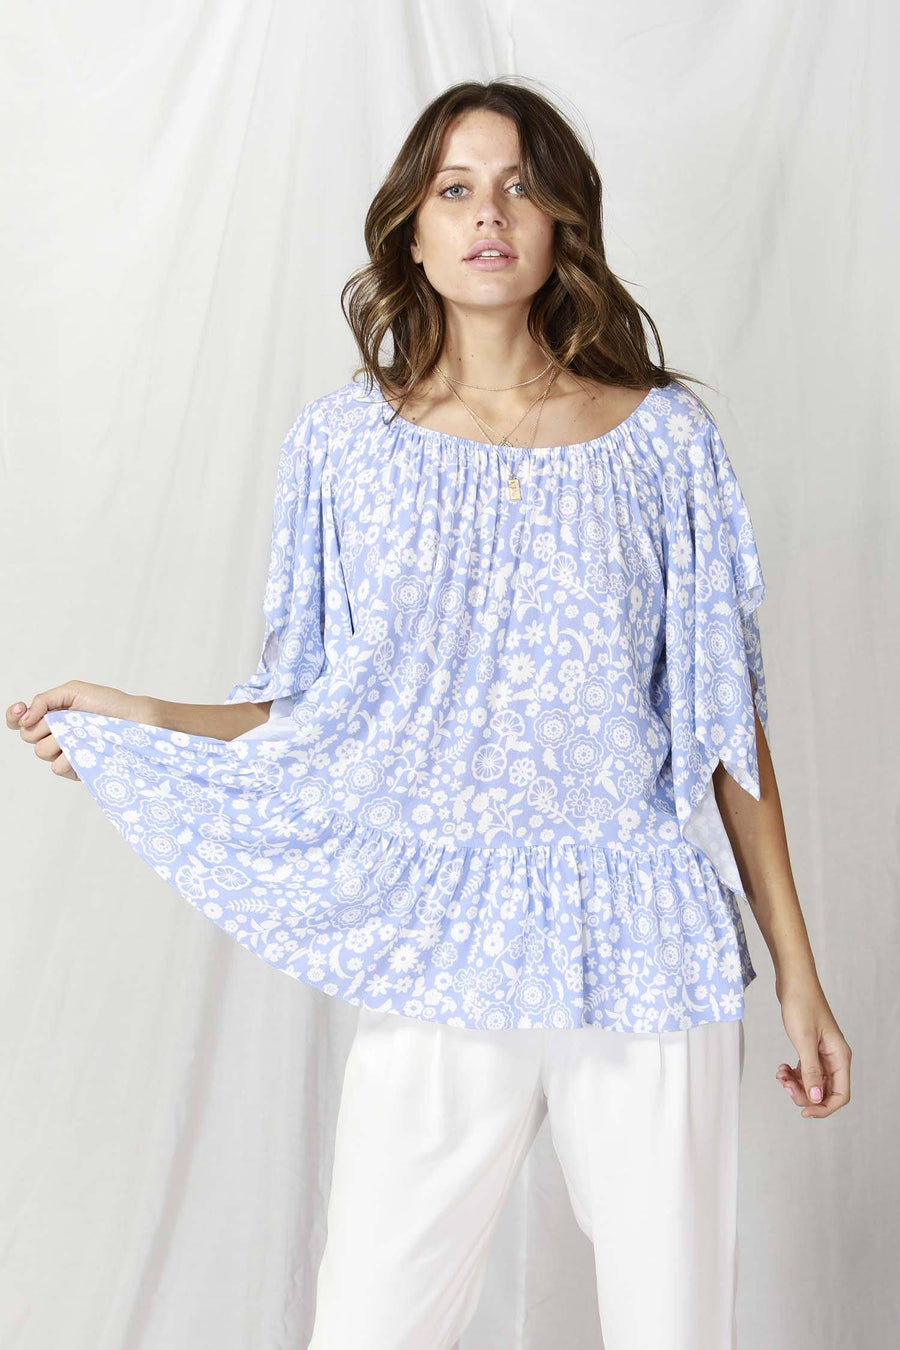 La Spezia Ruffled Blouse in Botanical Lavender